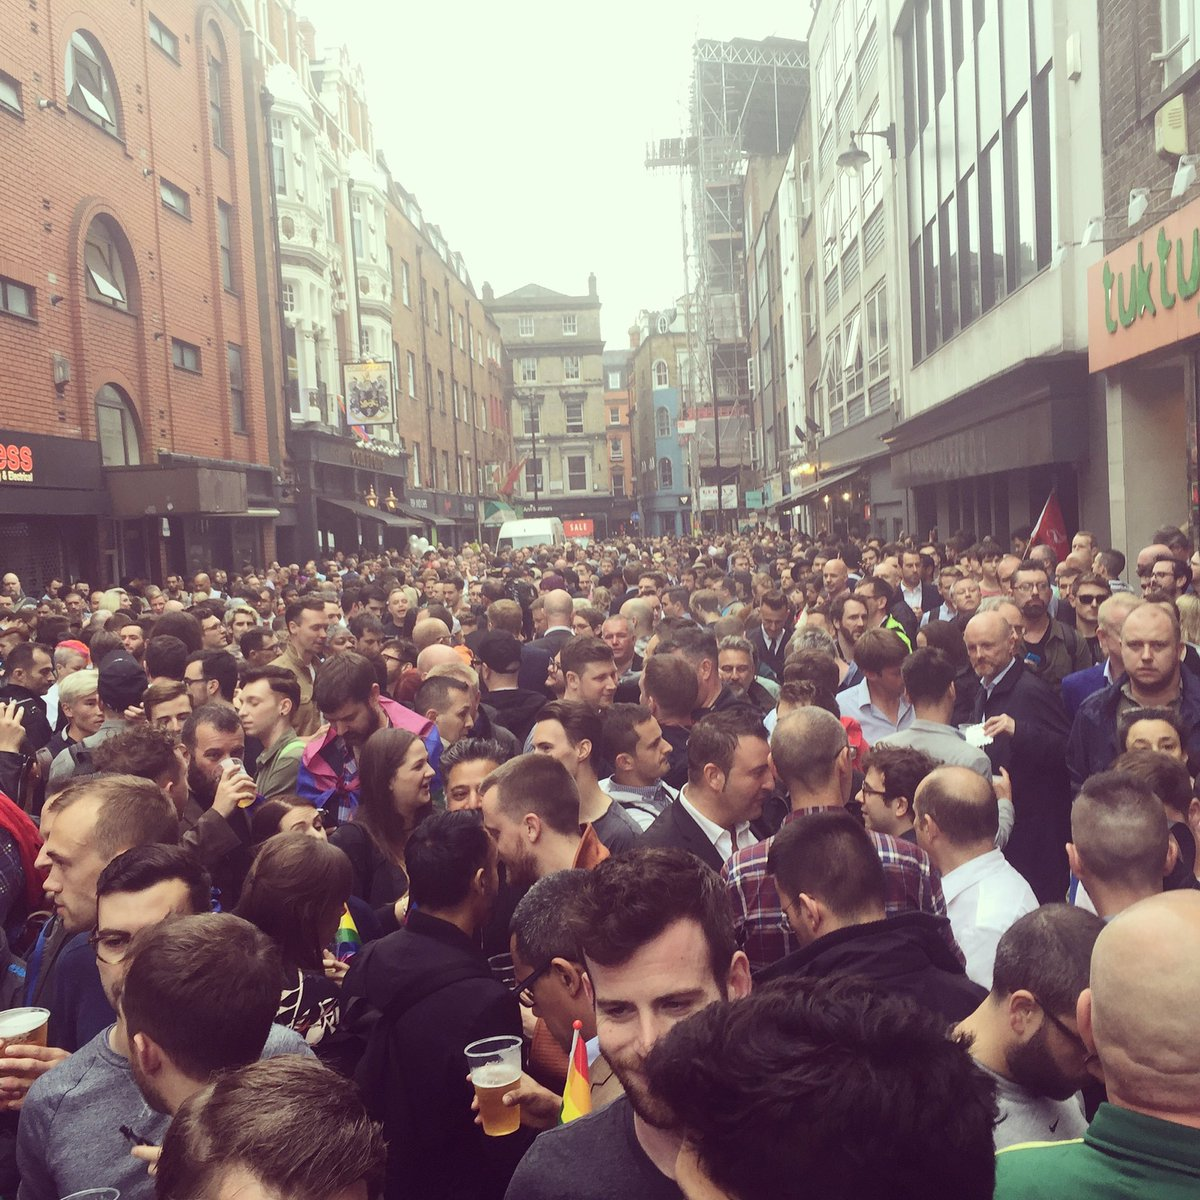 On a rammed Old Compton Street where everyone is preparing to pay their respects to all those killed in #Orlando https://t.co/hyjC05Bi3K